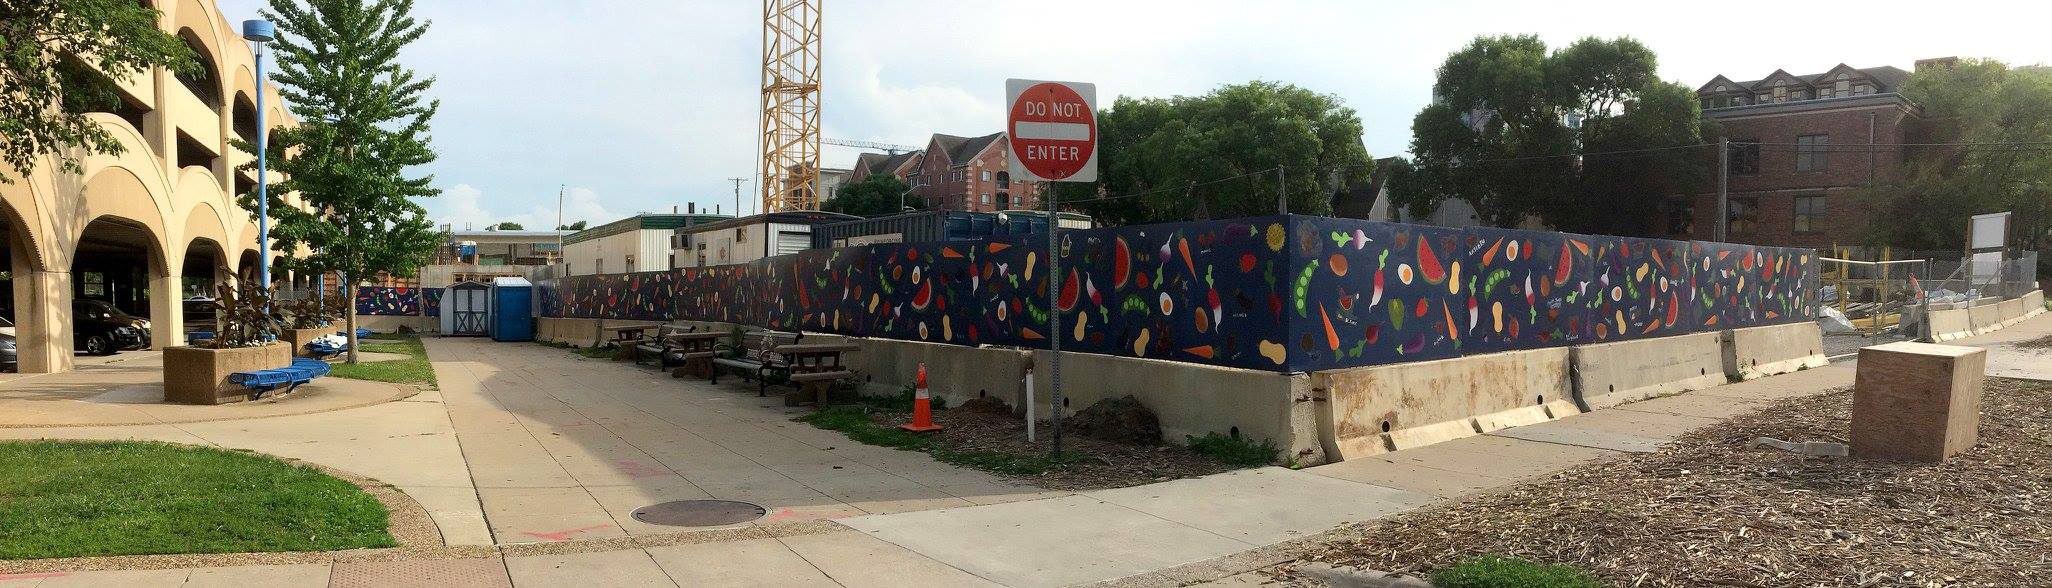 Community mural project for the Iowa City Farmers' Market. This piece included a few hundred participants whose paintings were later laminated to the surface as part of the piece. The rest of the work was stenciled around those paintings in the studio.175' x 4' completed over the course of 3 weeks in June of 2017.